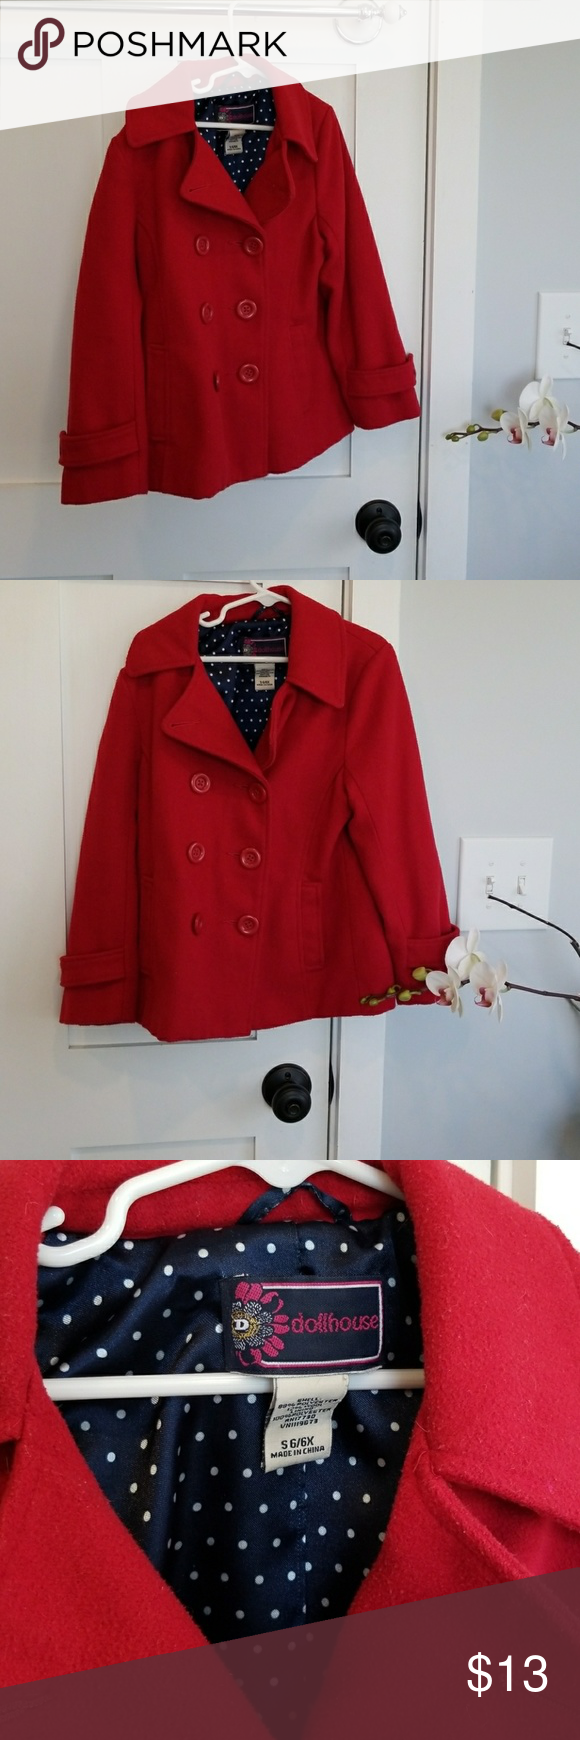 9f991d383b0 Holiday Coat Girls 6 6X Adorable Pea Coat. Contains wool. Jackets   Coats  Pea Coats